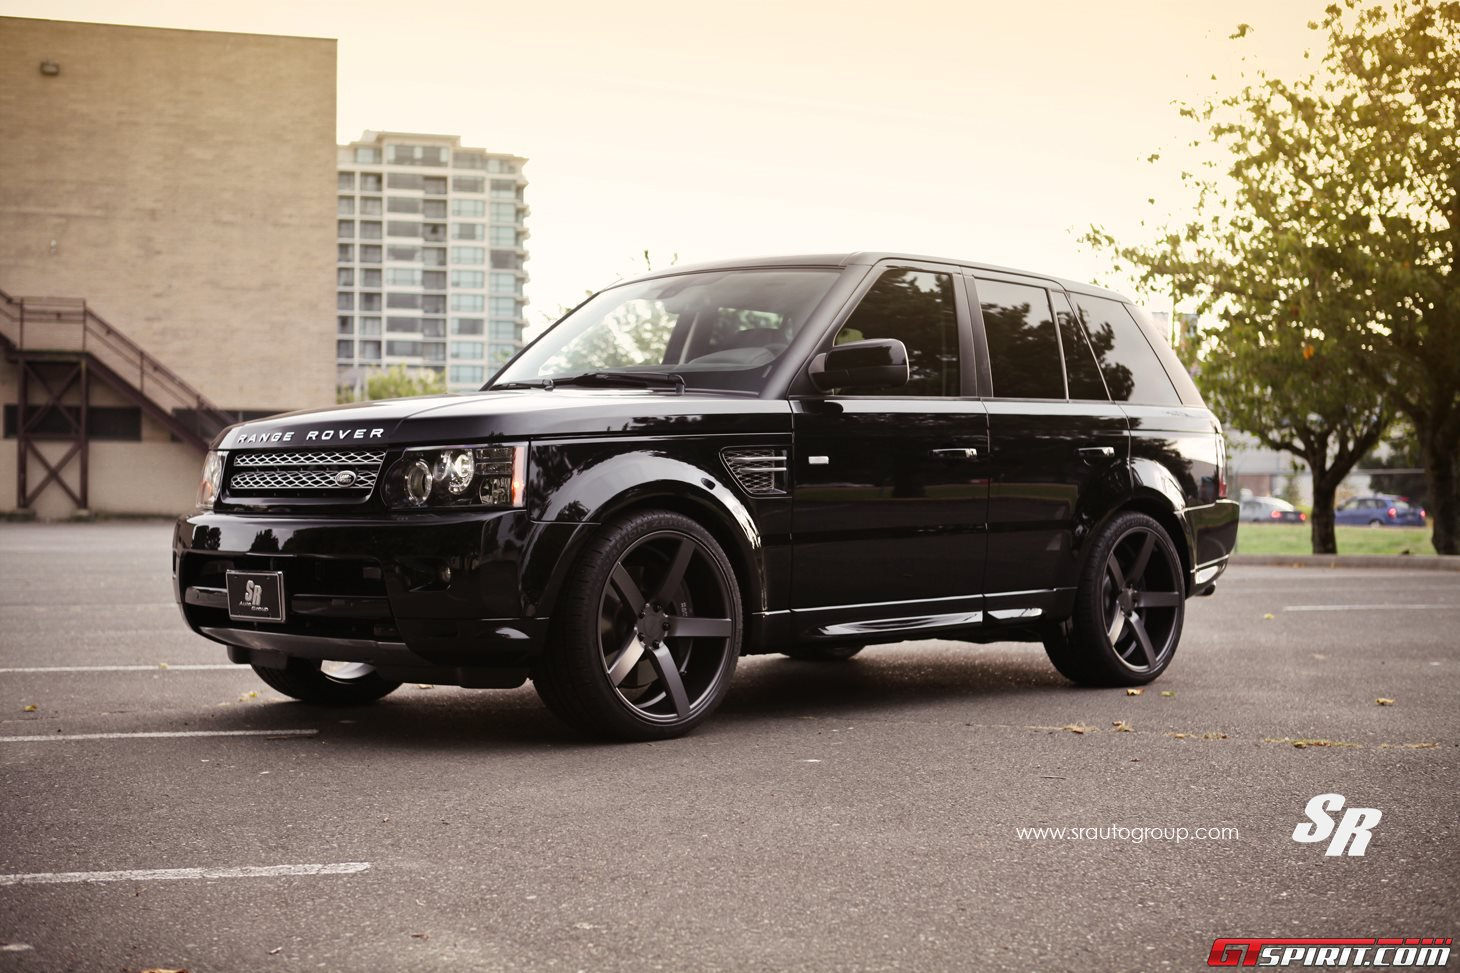 sr auto group range rover on 22 inch vossen wheels. Black Bedroom Furniture Sets. Home Design Ideas